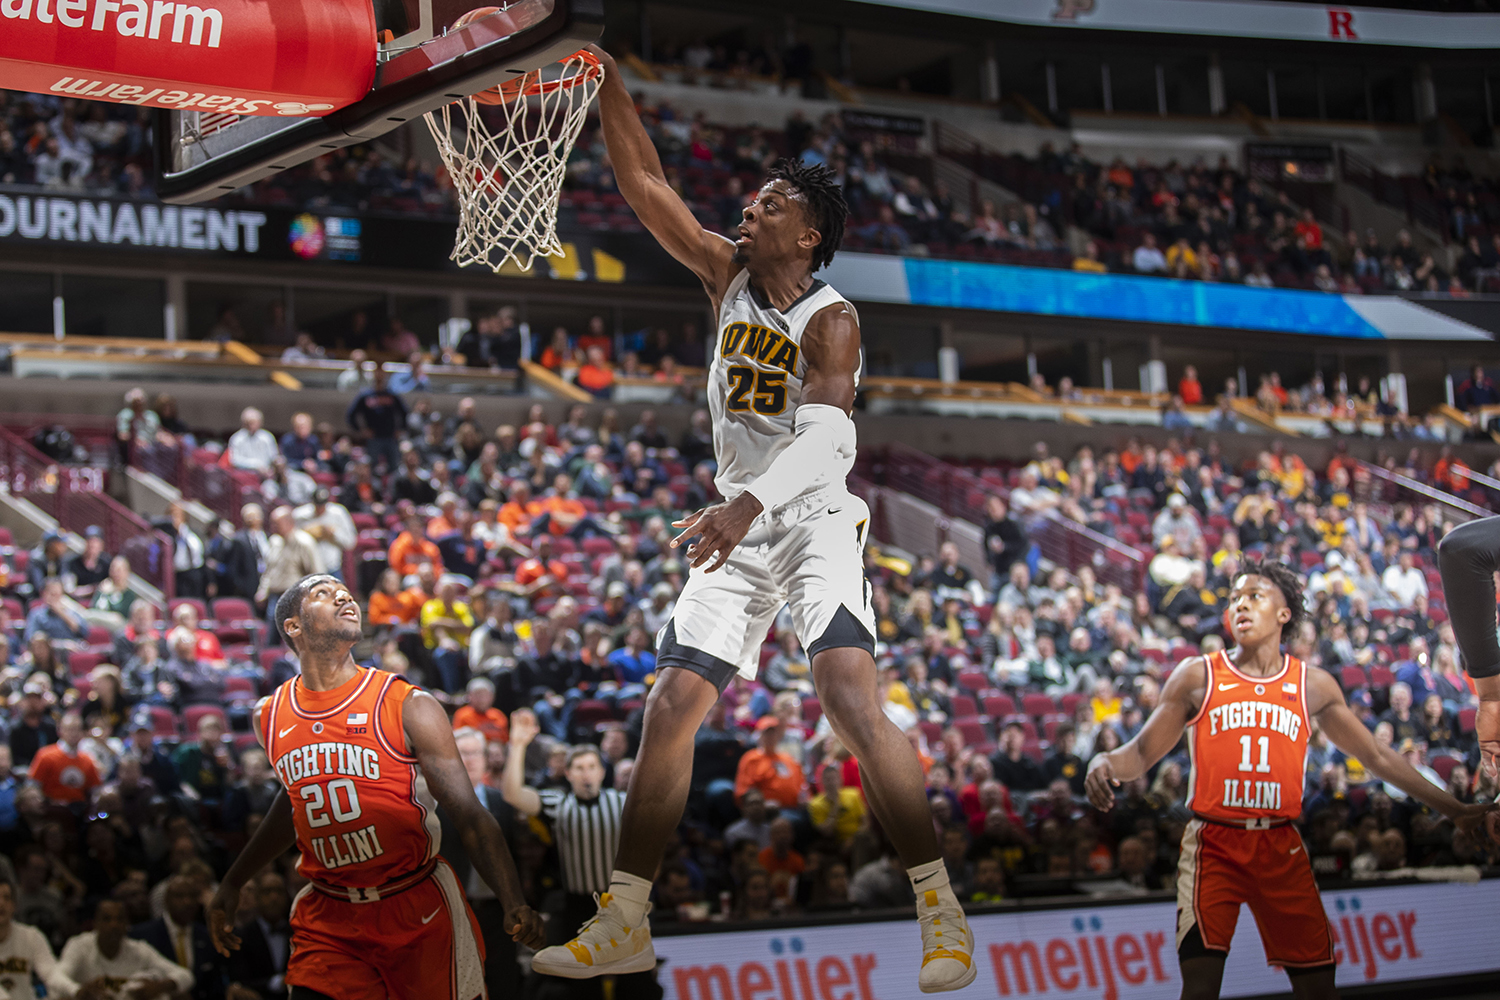 Iowa forward Tyler Cook dunks during the Iowa/Illinois Big Ten Tournament men's basketball game in the United Center in Chicago on Thursday, March 14, 2019. The Hawkeyes defeated the Fighting Illini, 83-62.